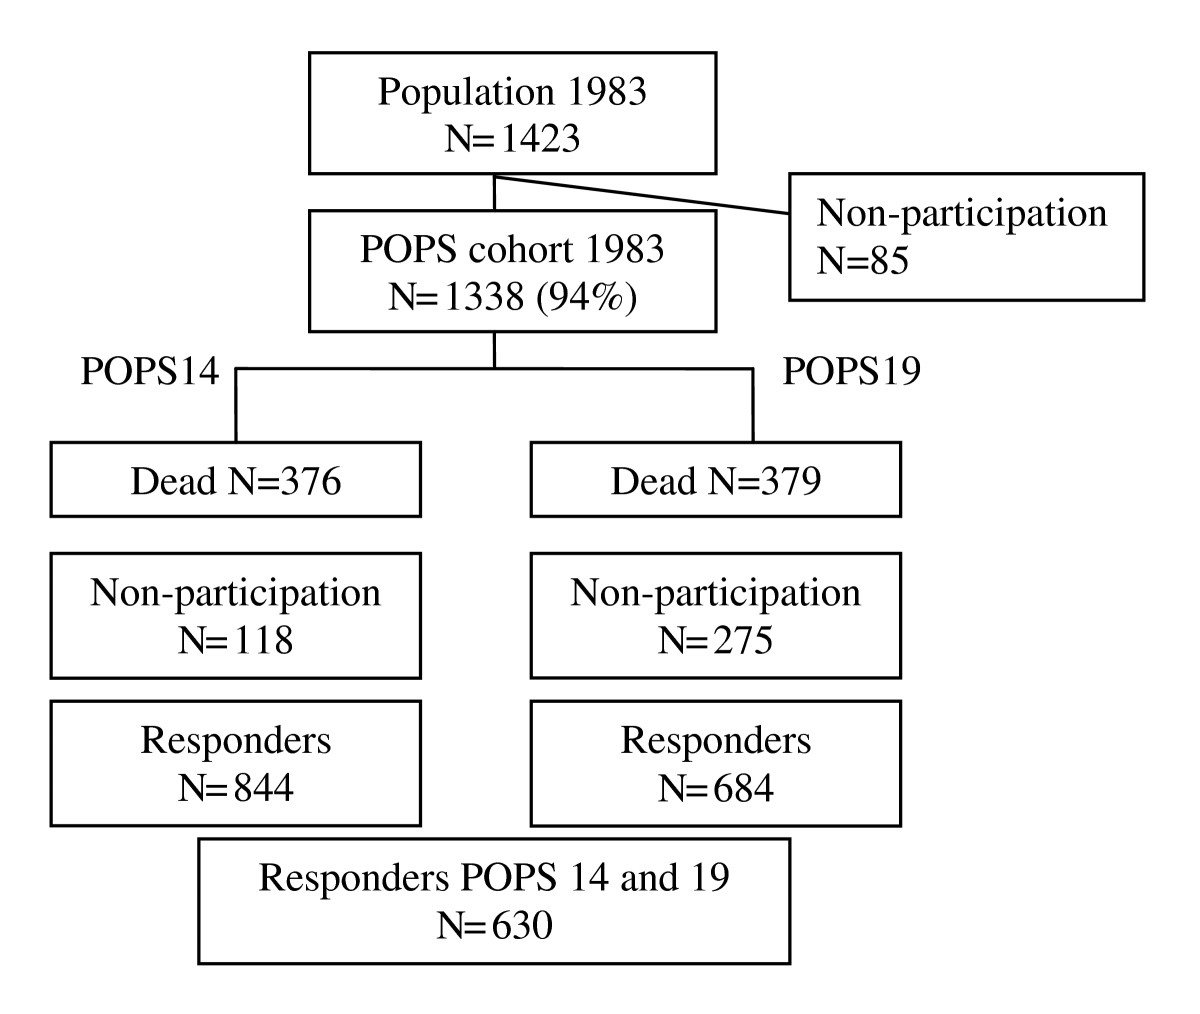 http://static-content.springer.com/image/art%3A10.1186%2F1477-7525-10-49/MediaObjects/12955_2011_Article_960_Fig1_HTML.jpg